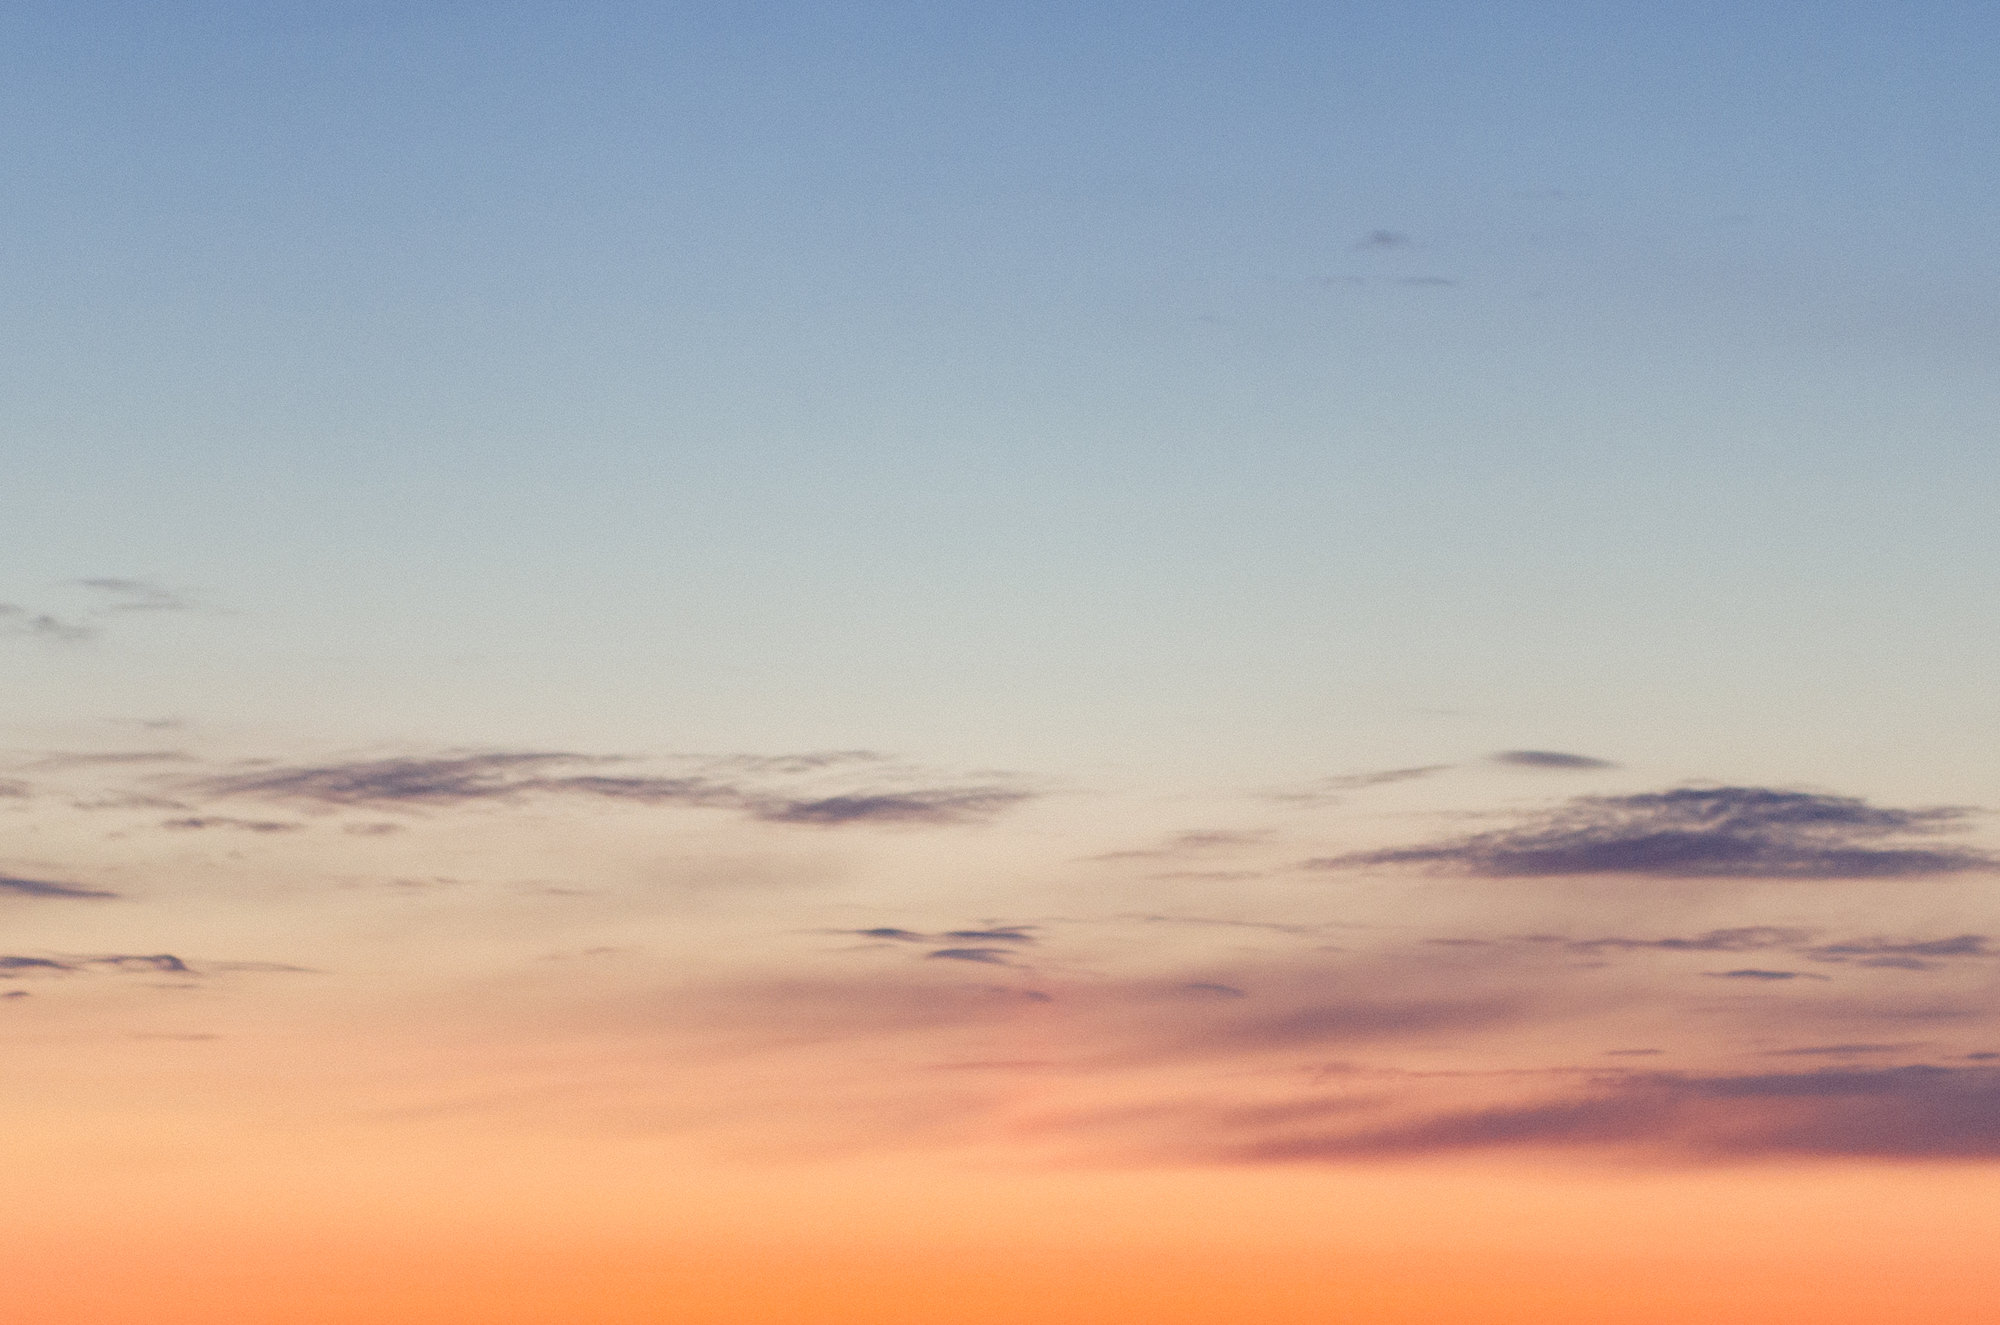 polar-visual-taylor-sheppard-photography-photo-video-motion-design-graphic-sunset-sky-minimal-gradient-stonewall-winnipeg-manitoba-nature-landscape.jpg